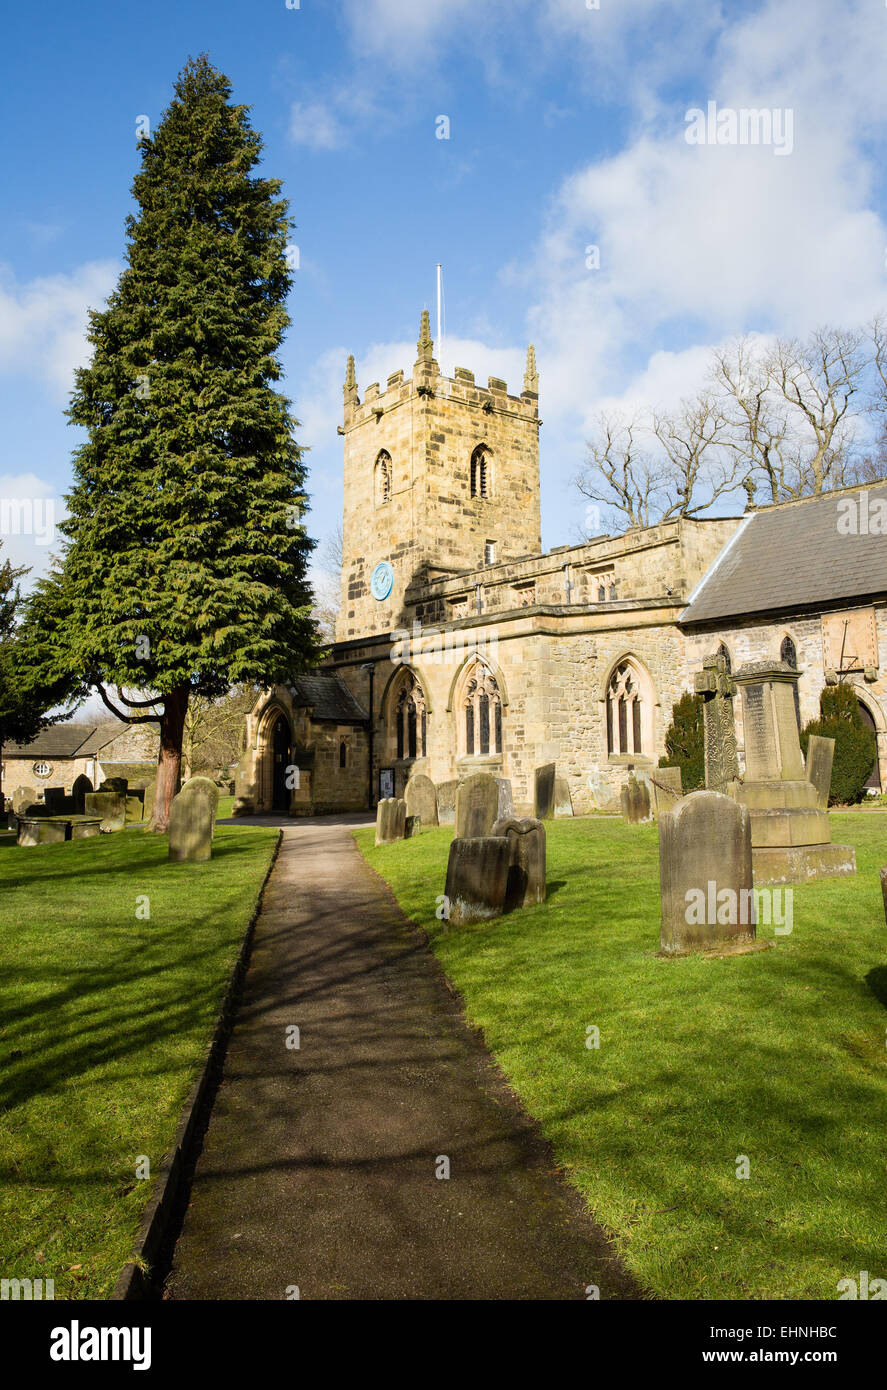 Parish church of St Lawrence at Eyam in the Derbyshire Peak District - Stock Image